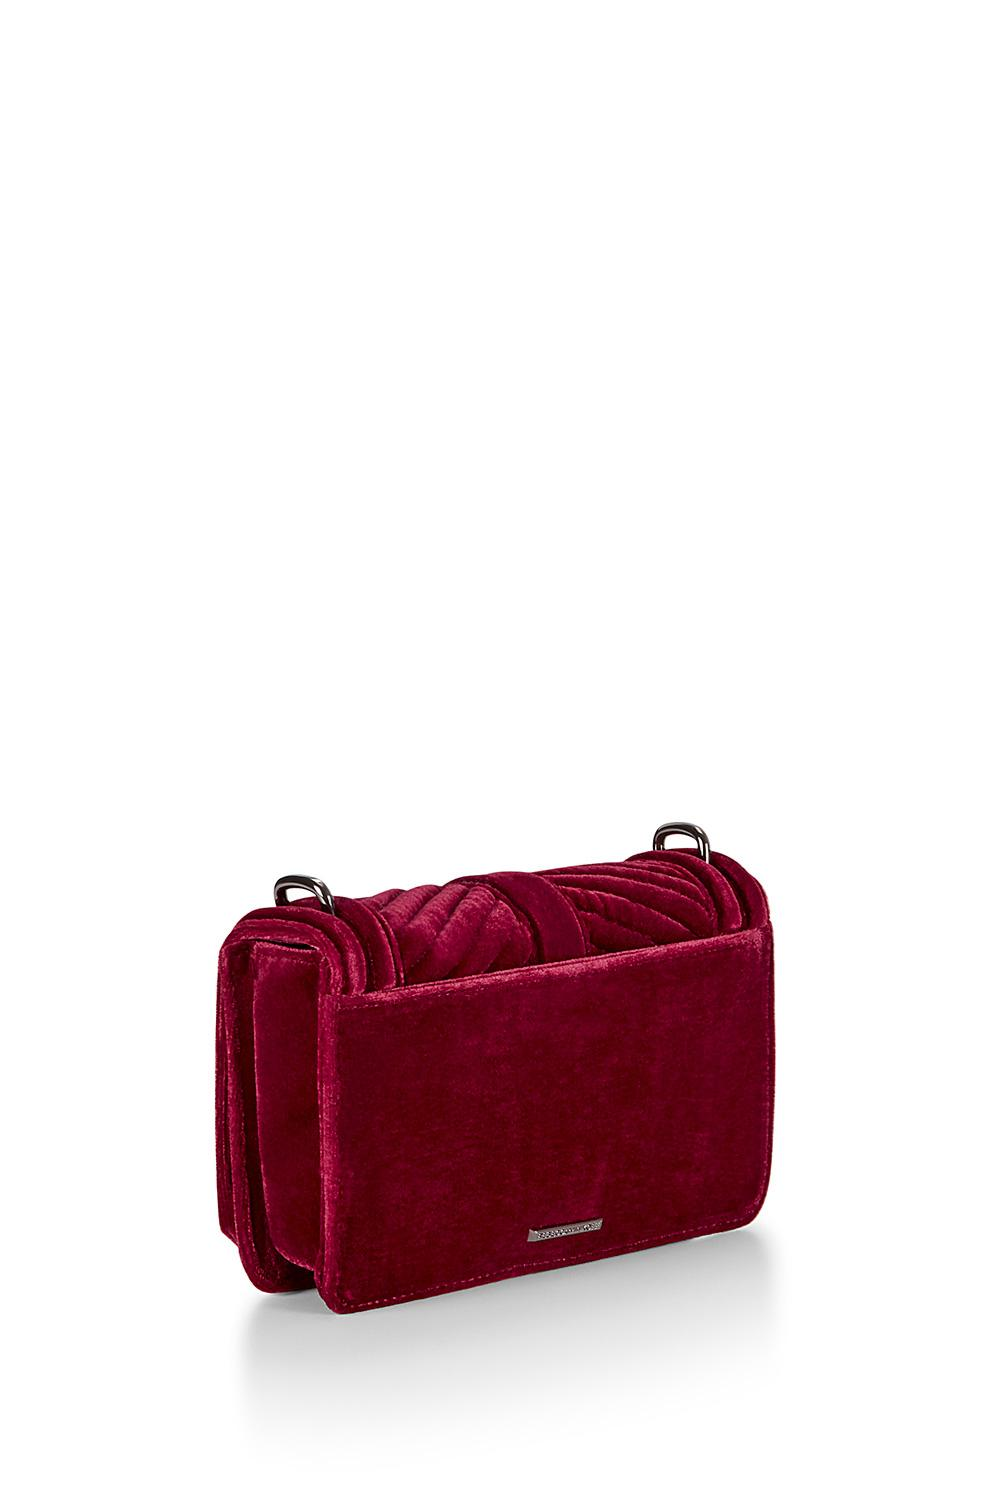 Rebecca Minkoff Chevron Quilted Small Velvet Love Crossbody in Soft Berry (Pink)